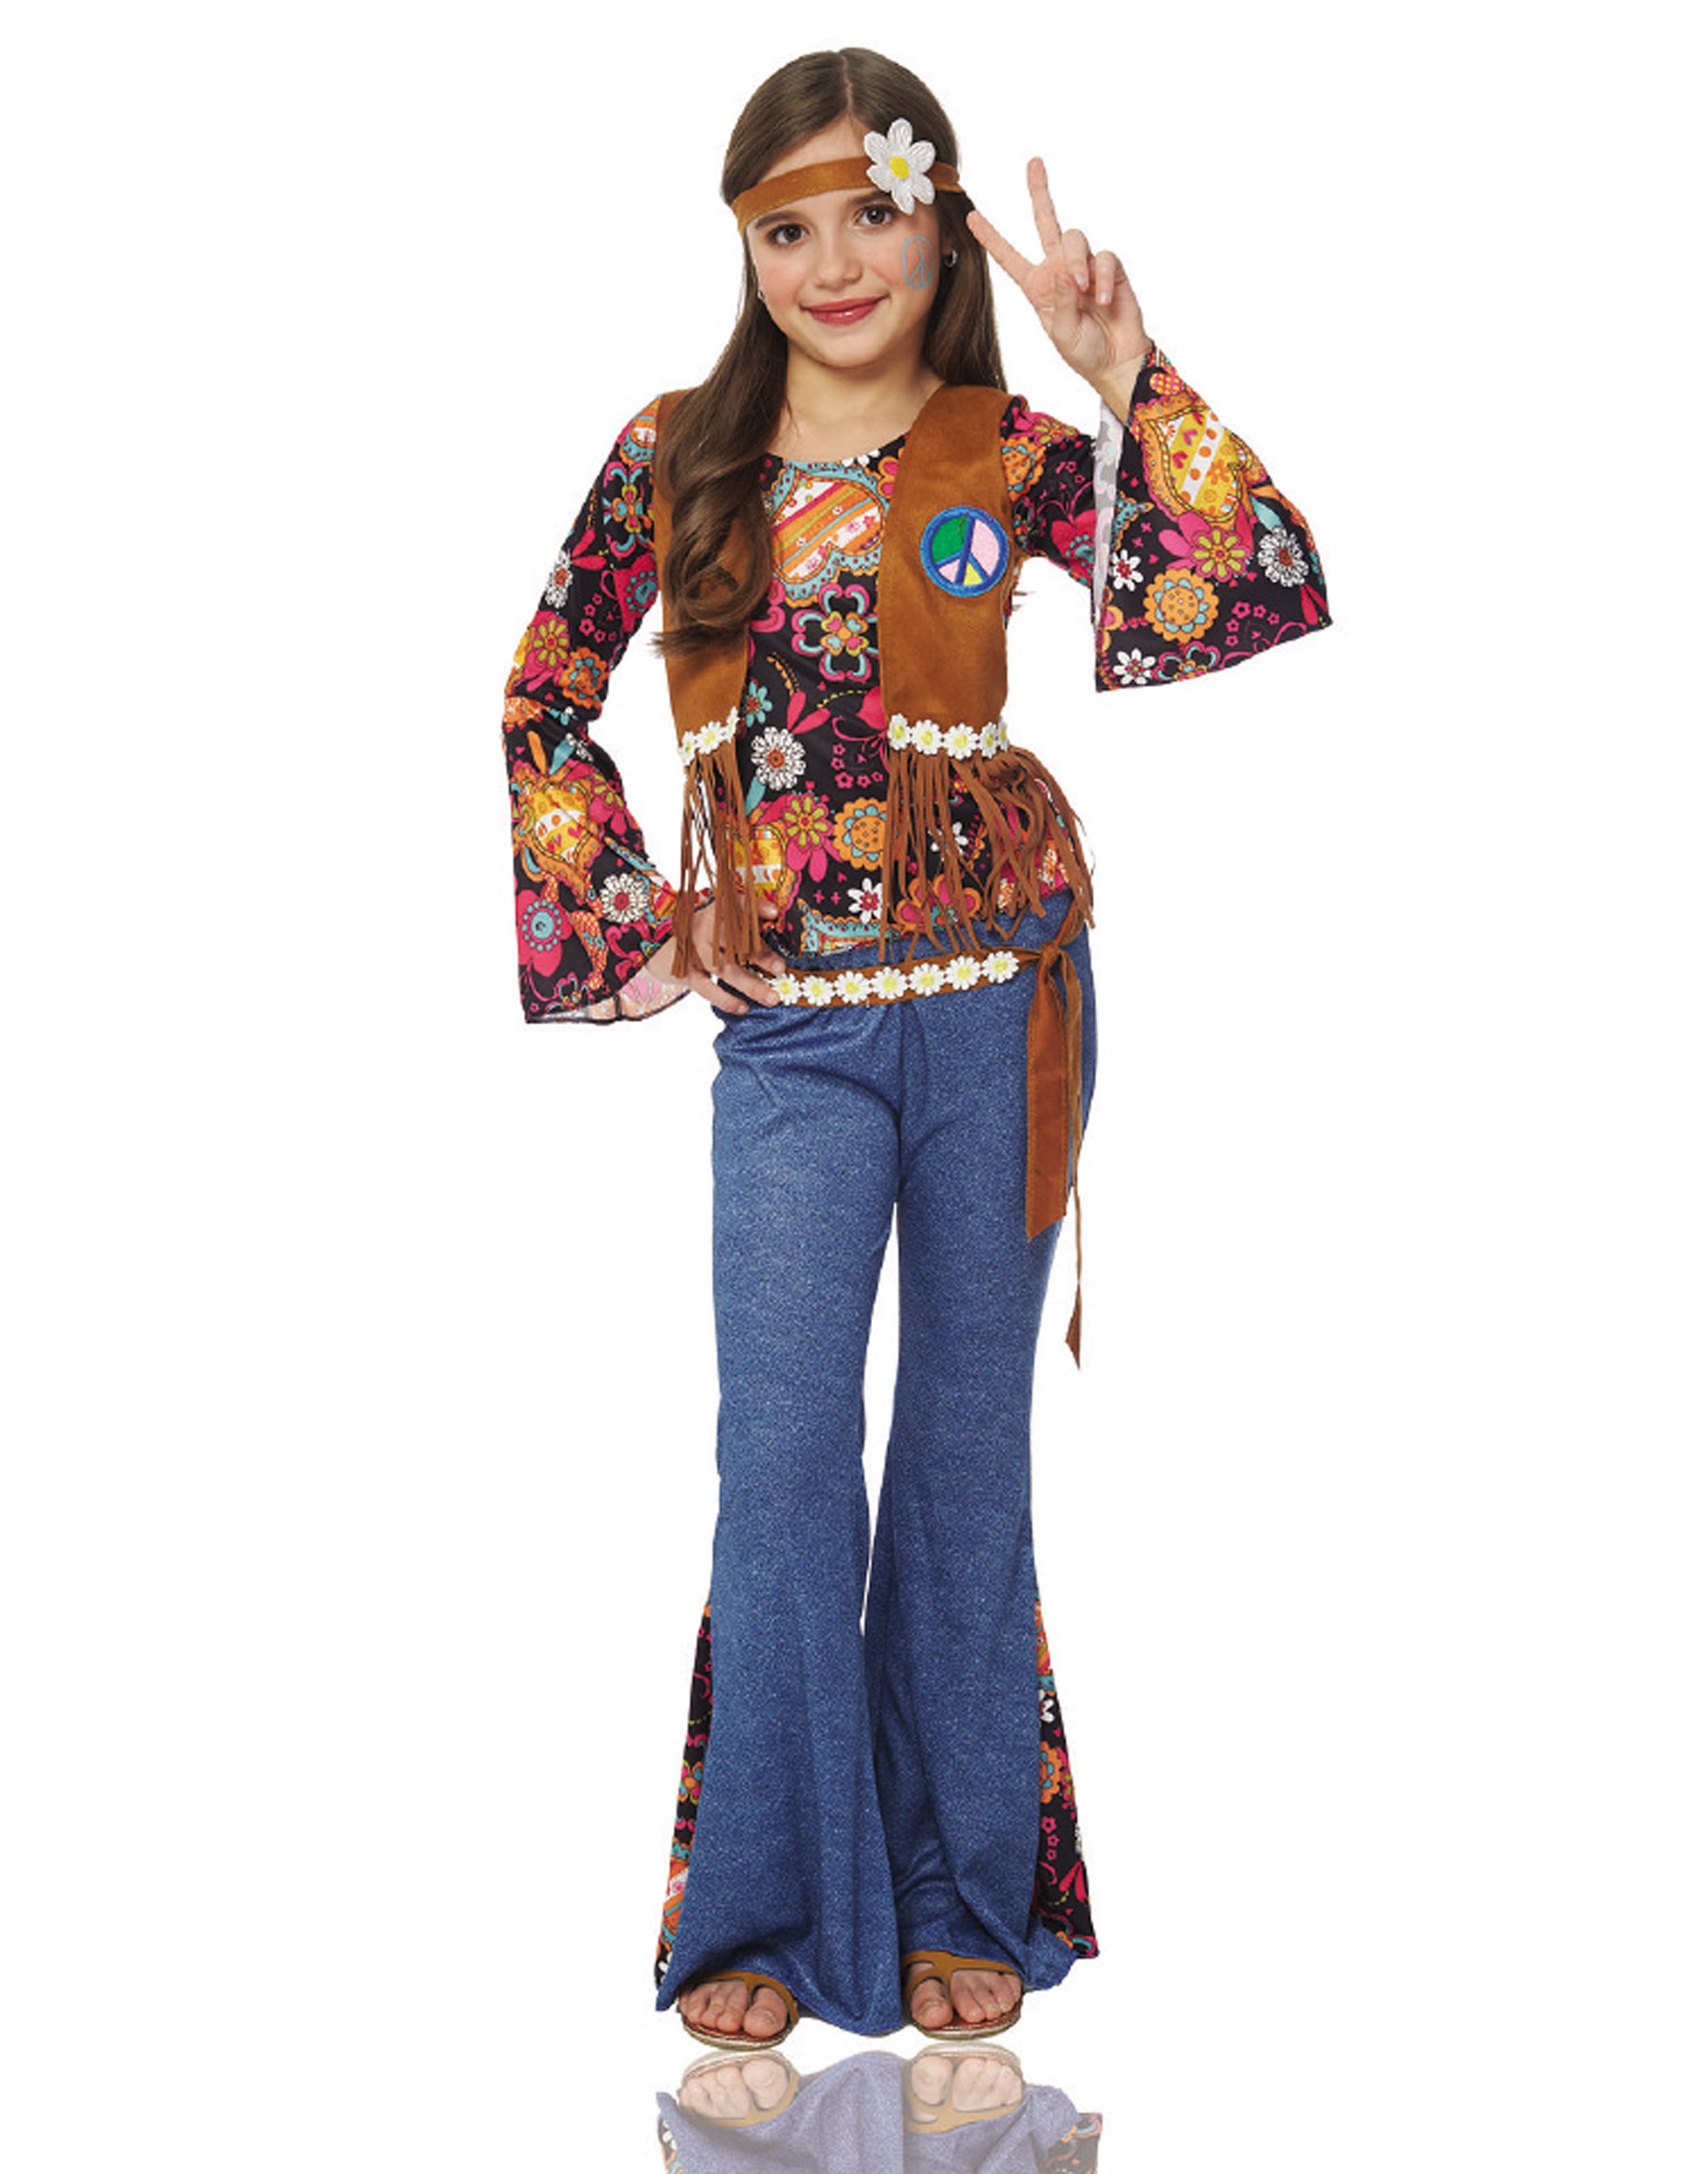 sc 1 st  Walmart & Peace Out Hippie Kids Costume - Walmart.com